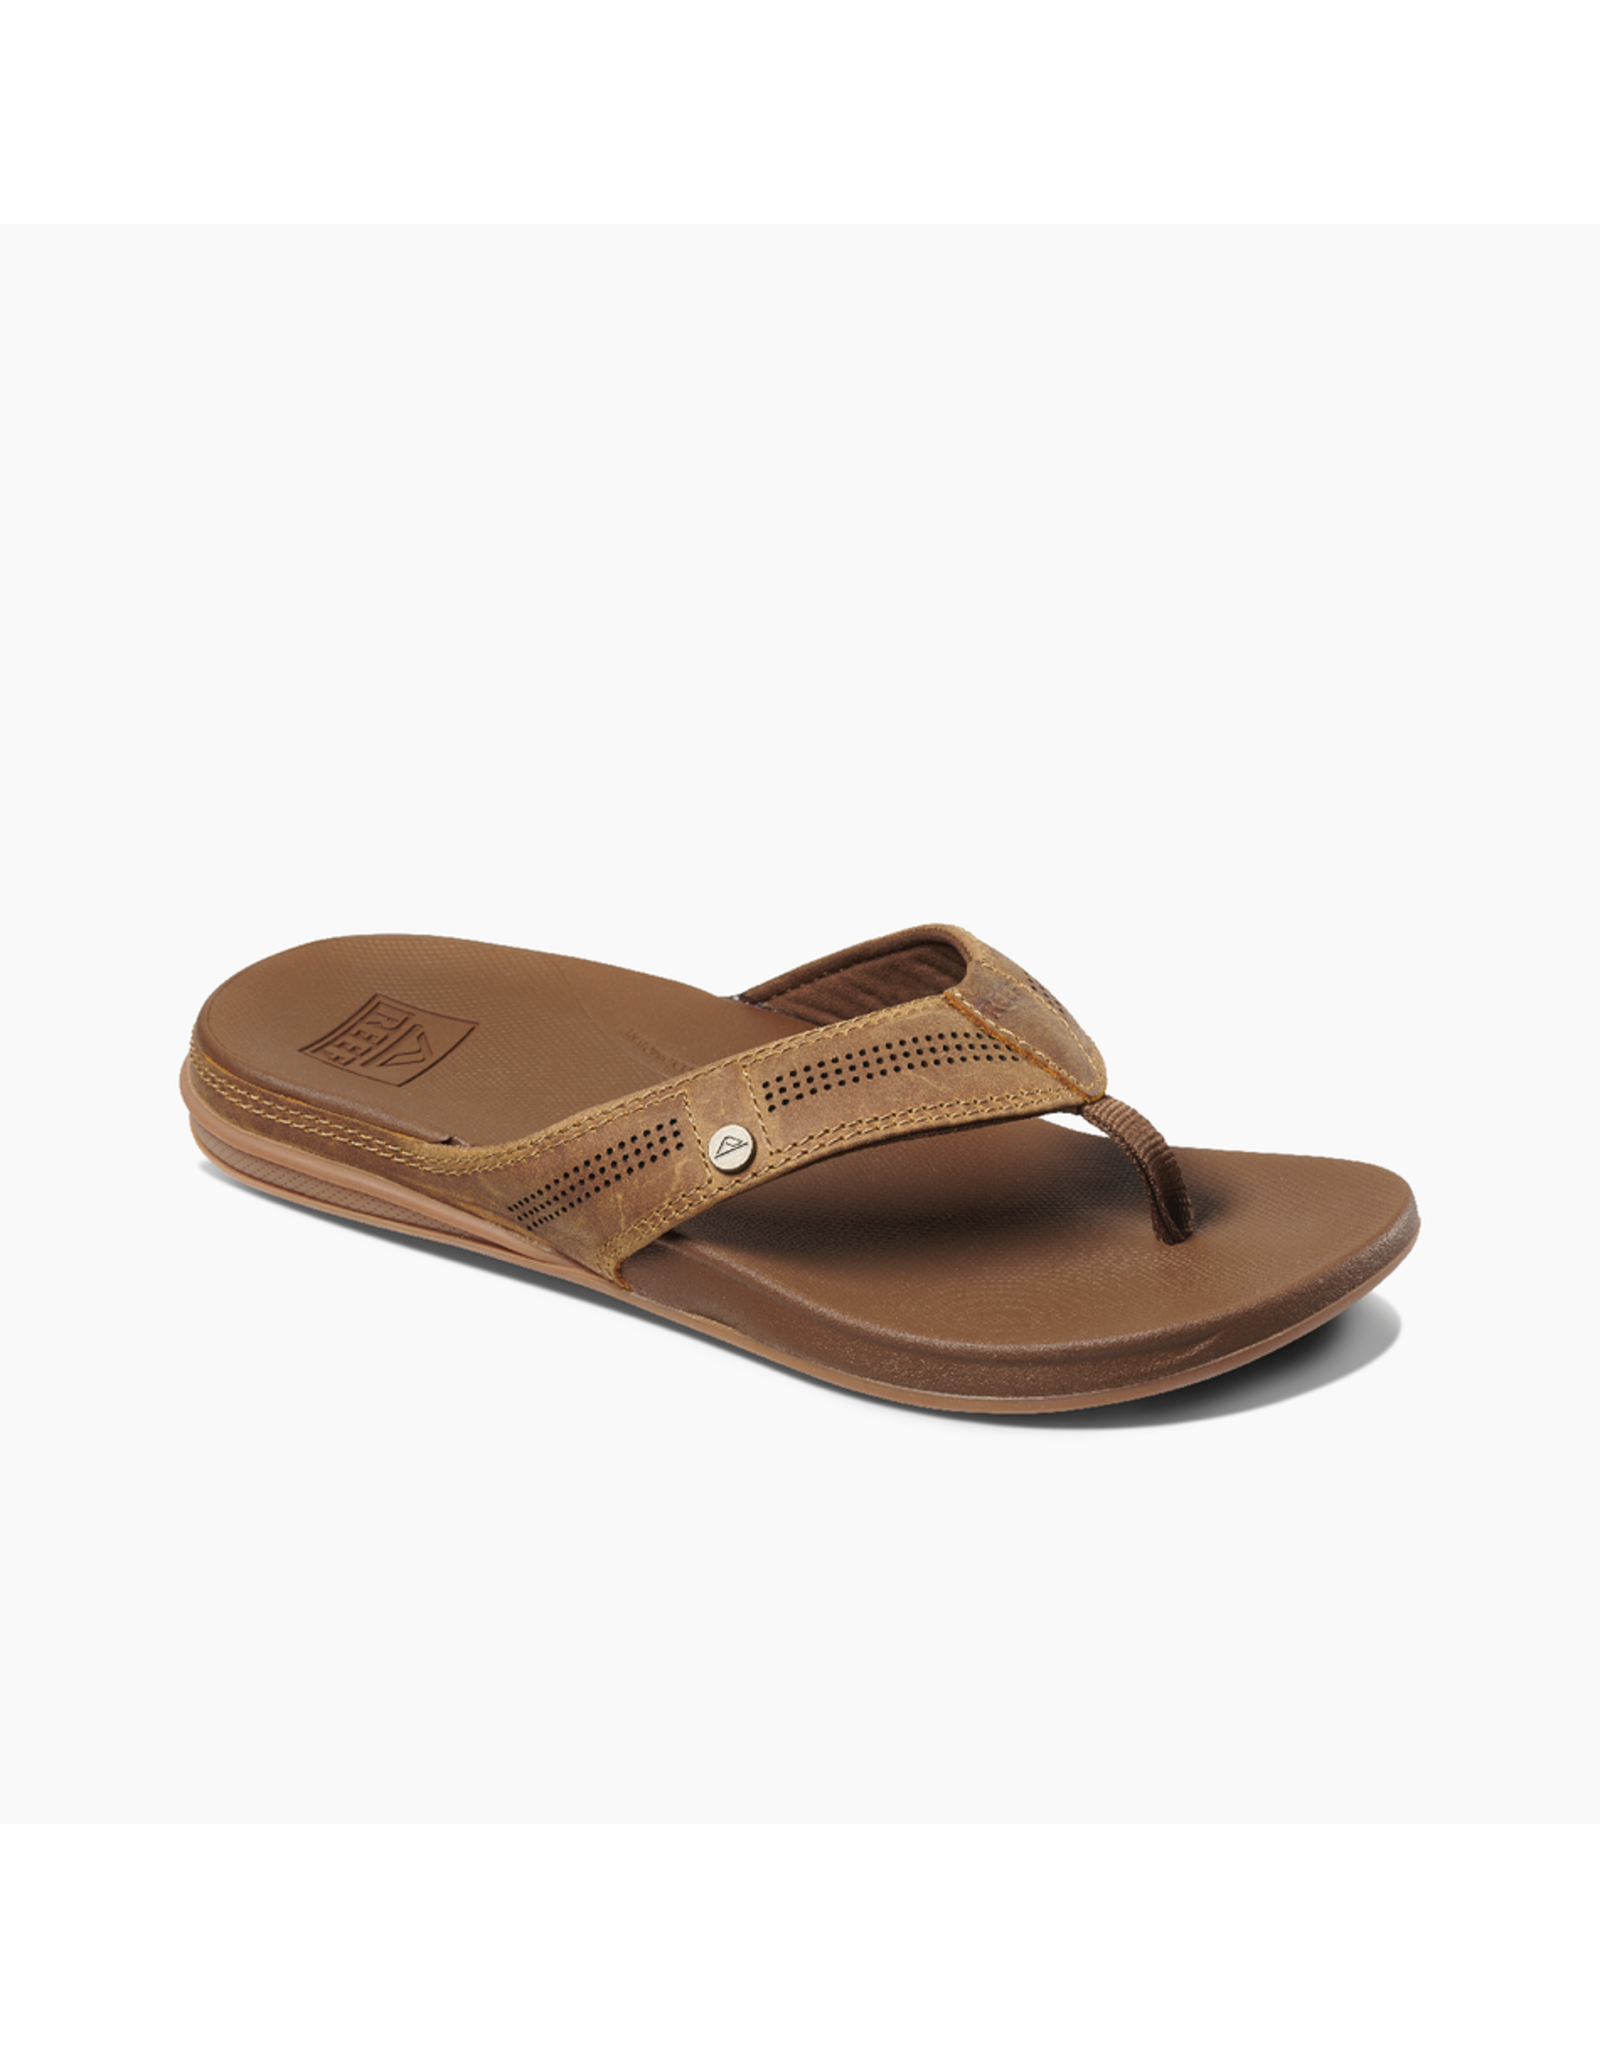 REEF MEN'S CUSHION LUX-TOFFEE